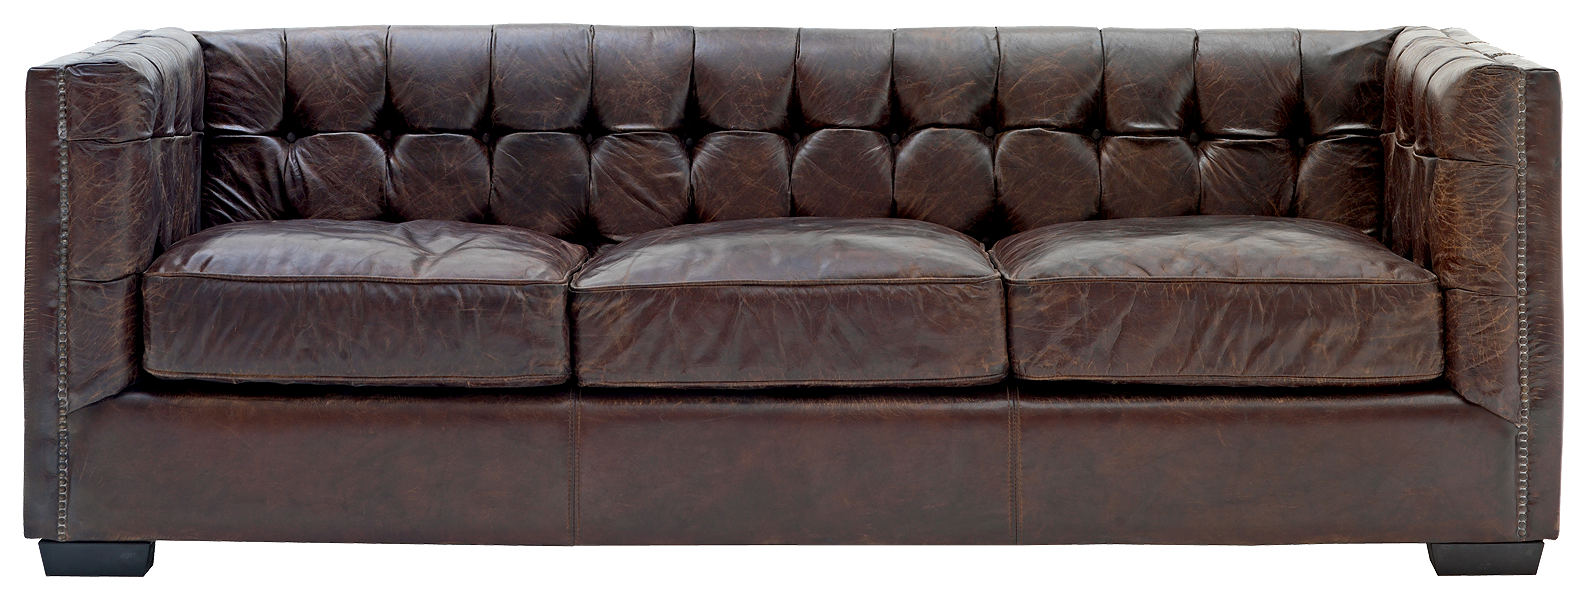 Couch HD PNG - 91470